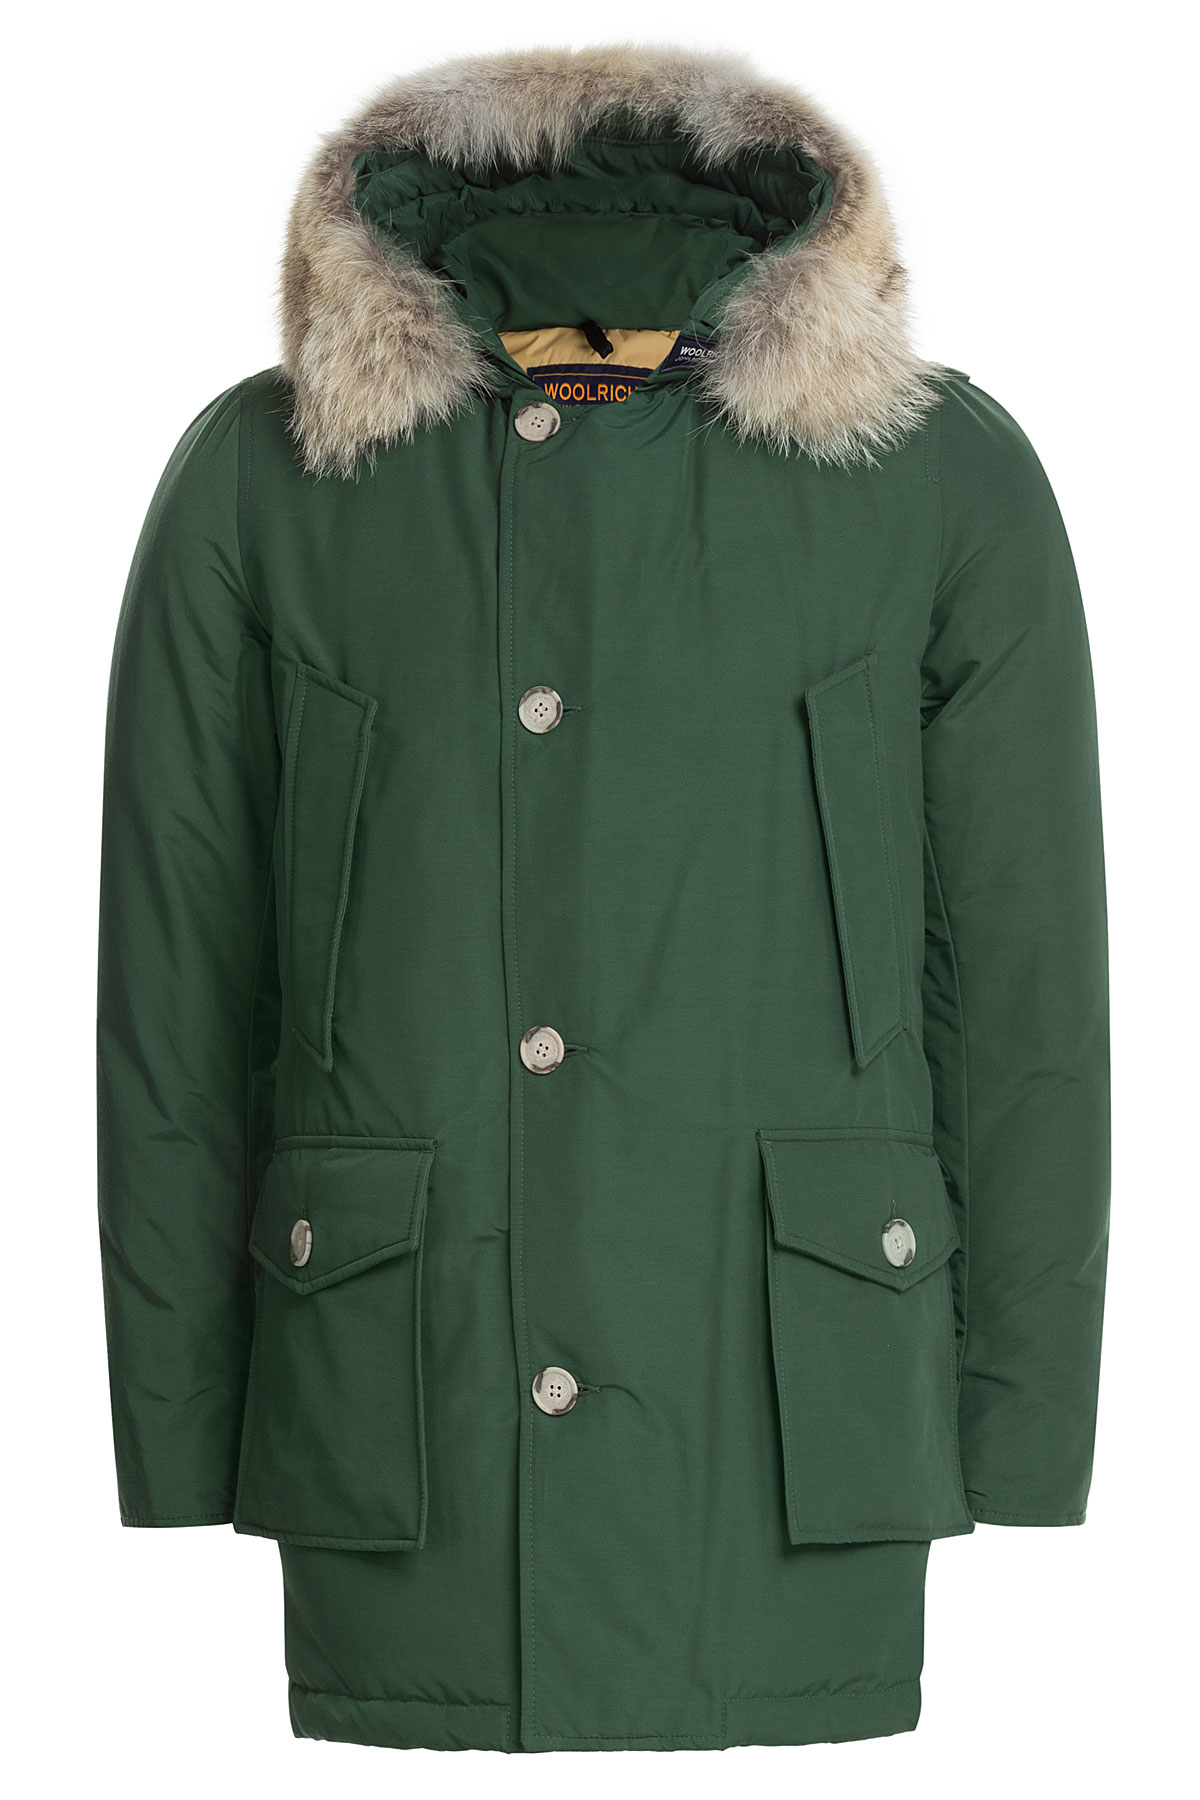 woolrich arctic down parka with fur trimmed hood green in green for men lyst. Black Bedroom Furniture Sets. Home Design Ideas